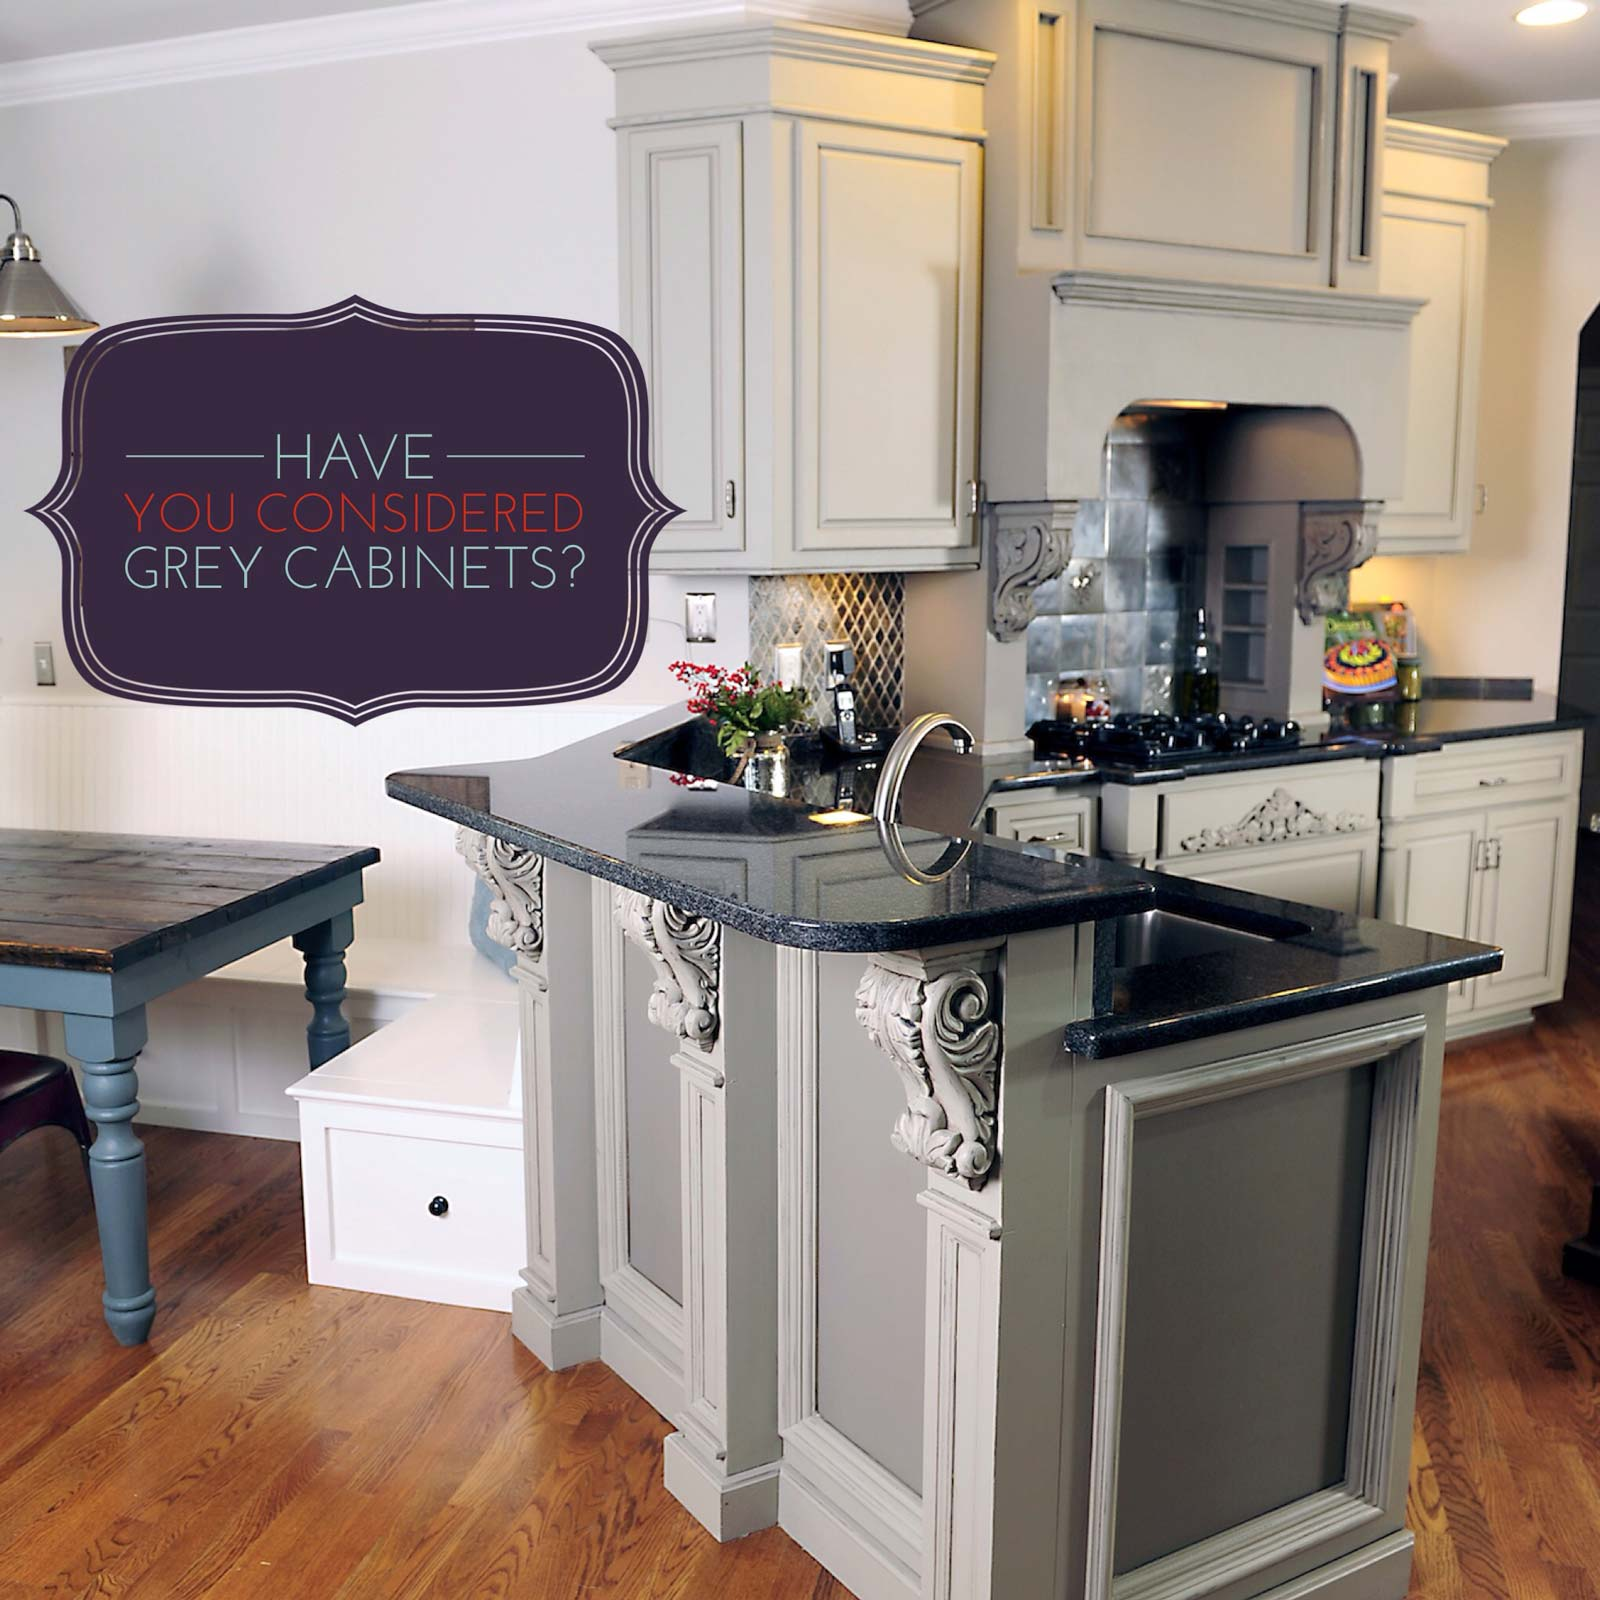 Kitchen Cabinets: Have You Considered Grey Kitchen Cabinets?